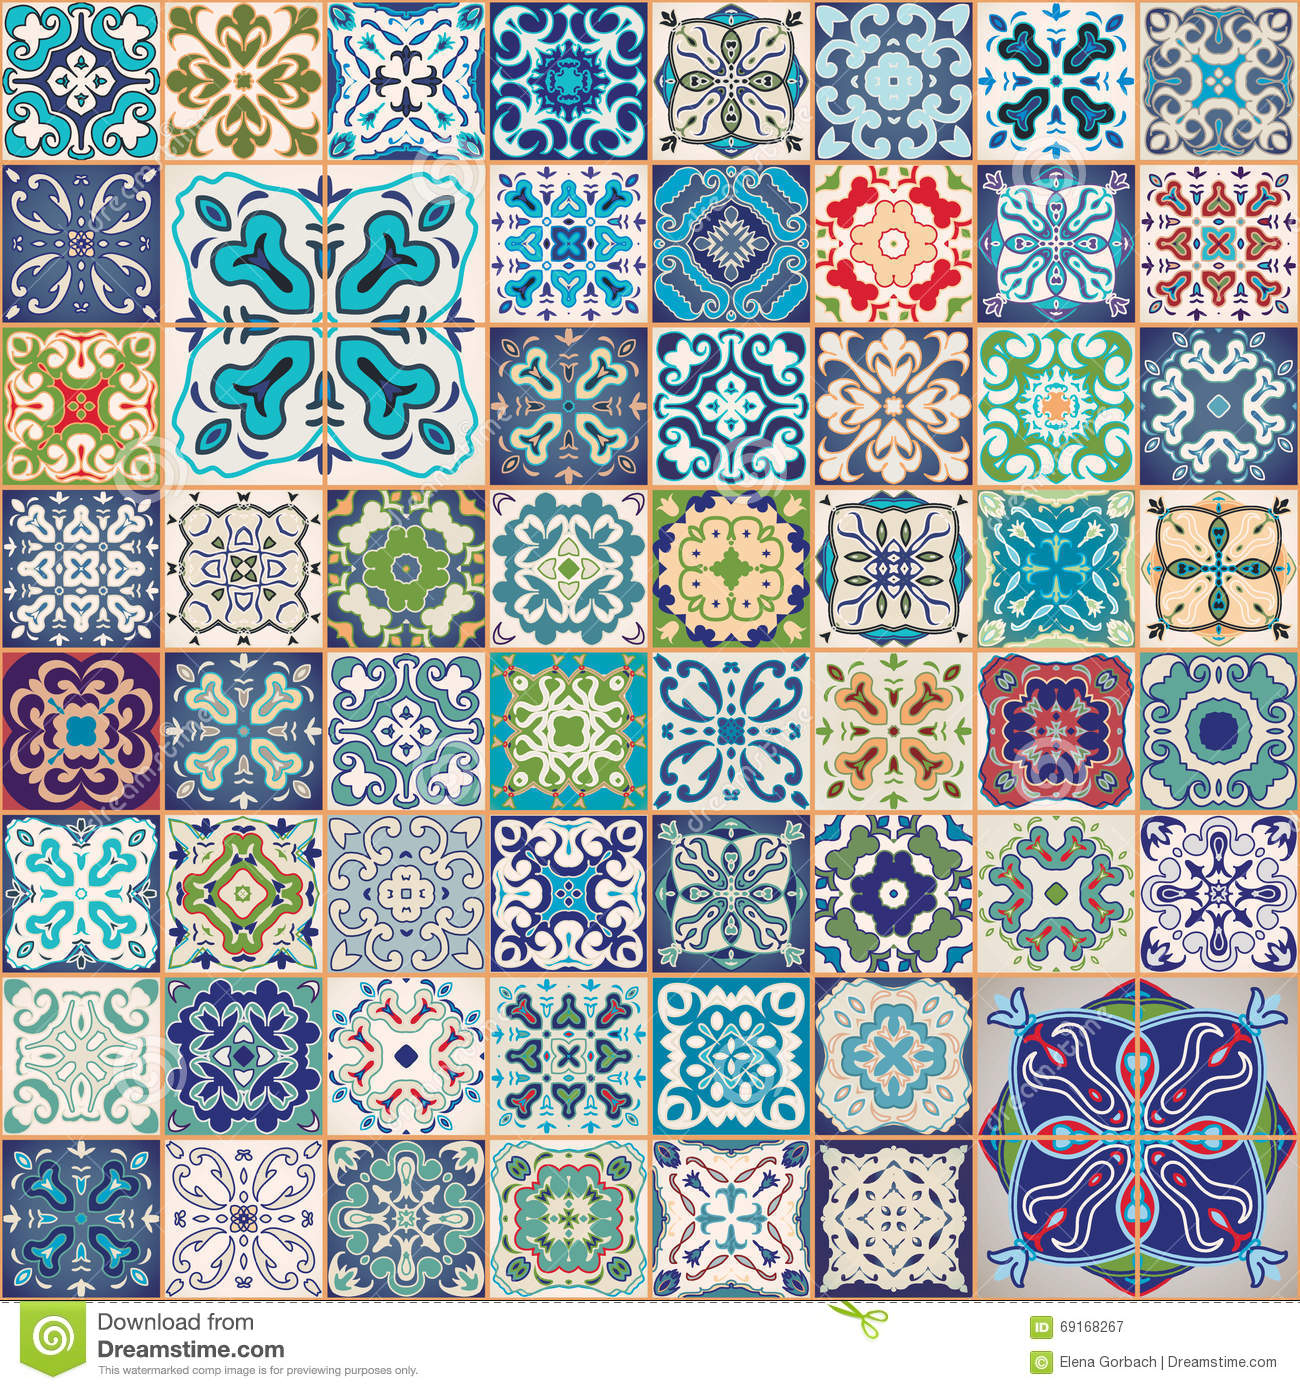 Gorgeous Floral Patchwork Design. Colorful Moroccan Or